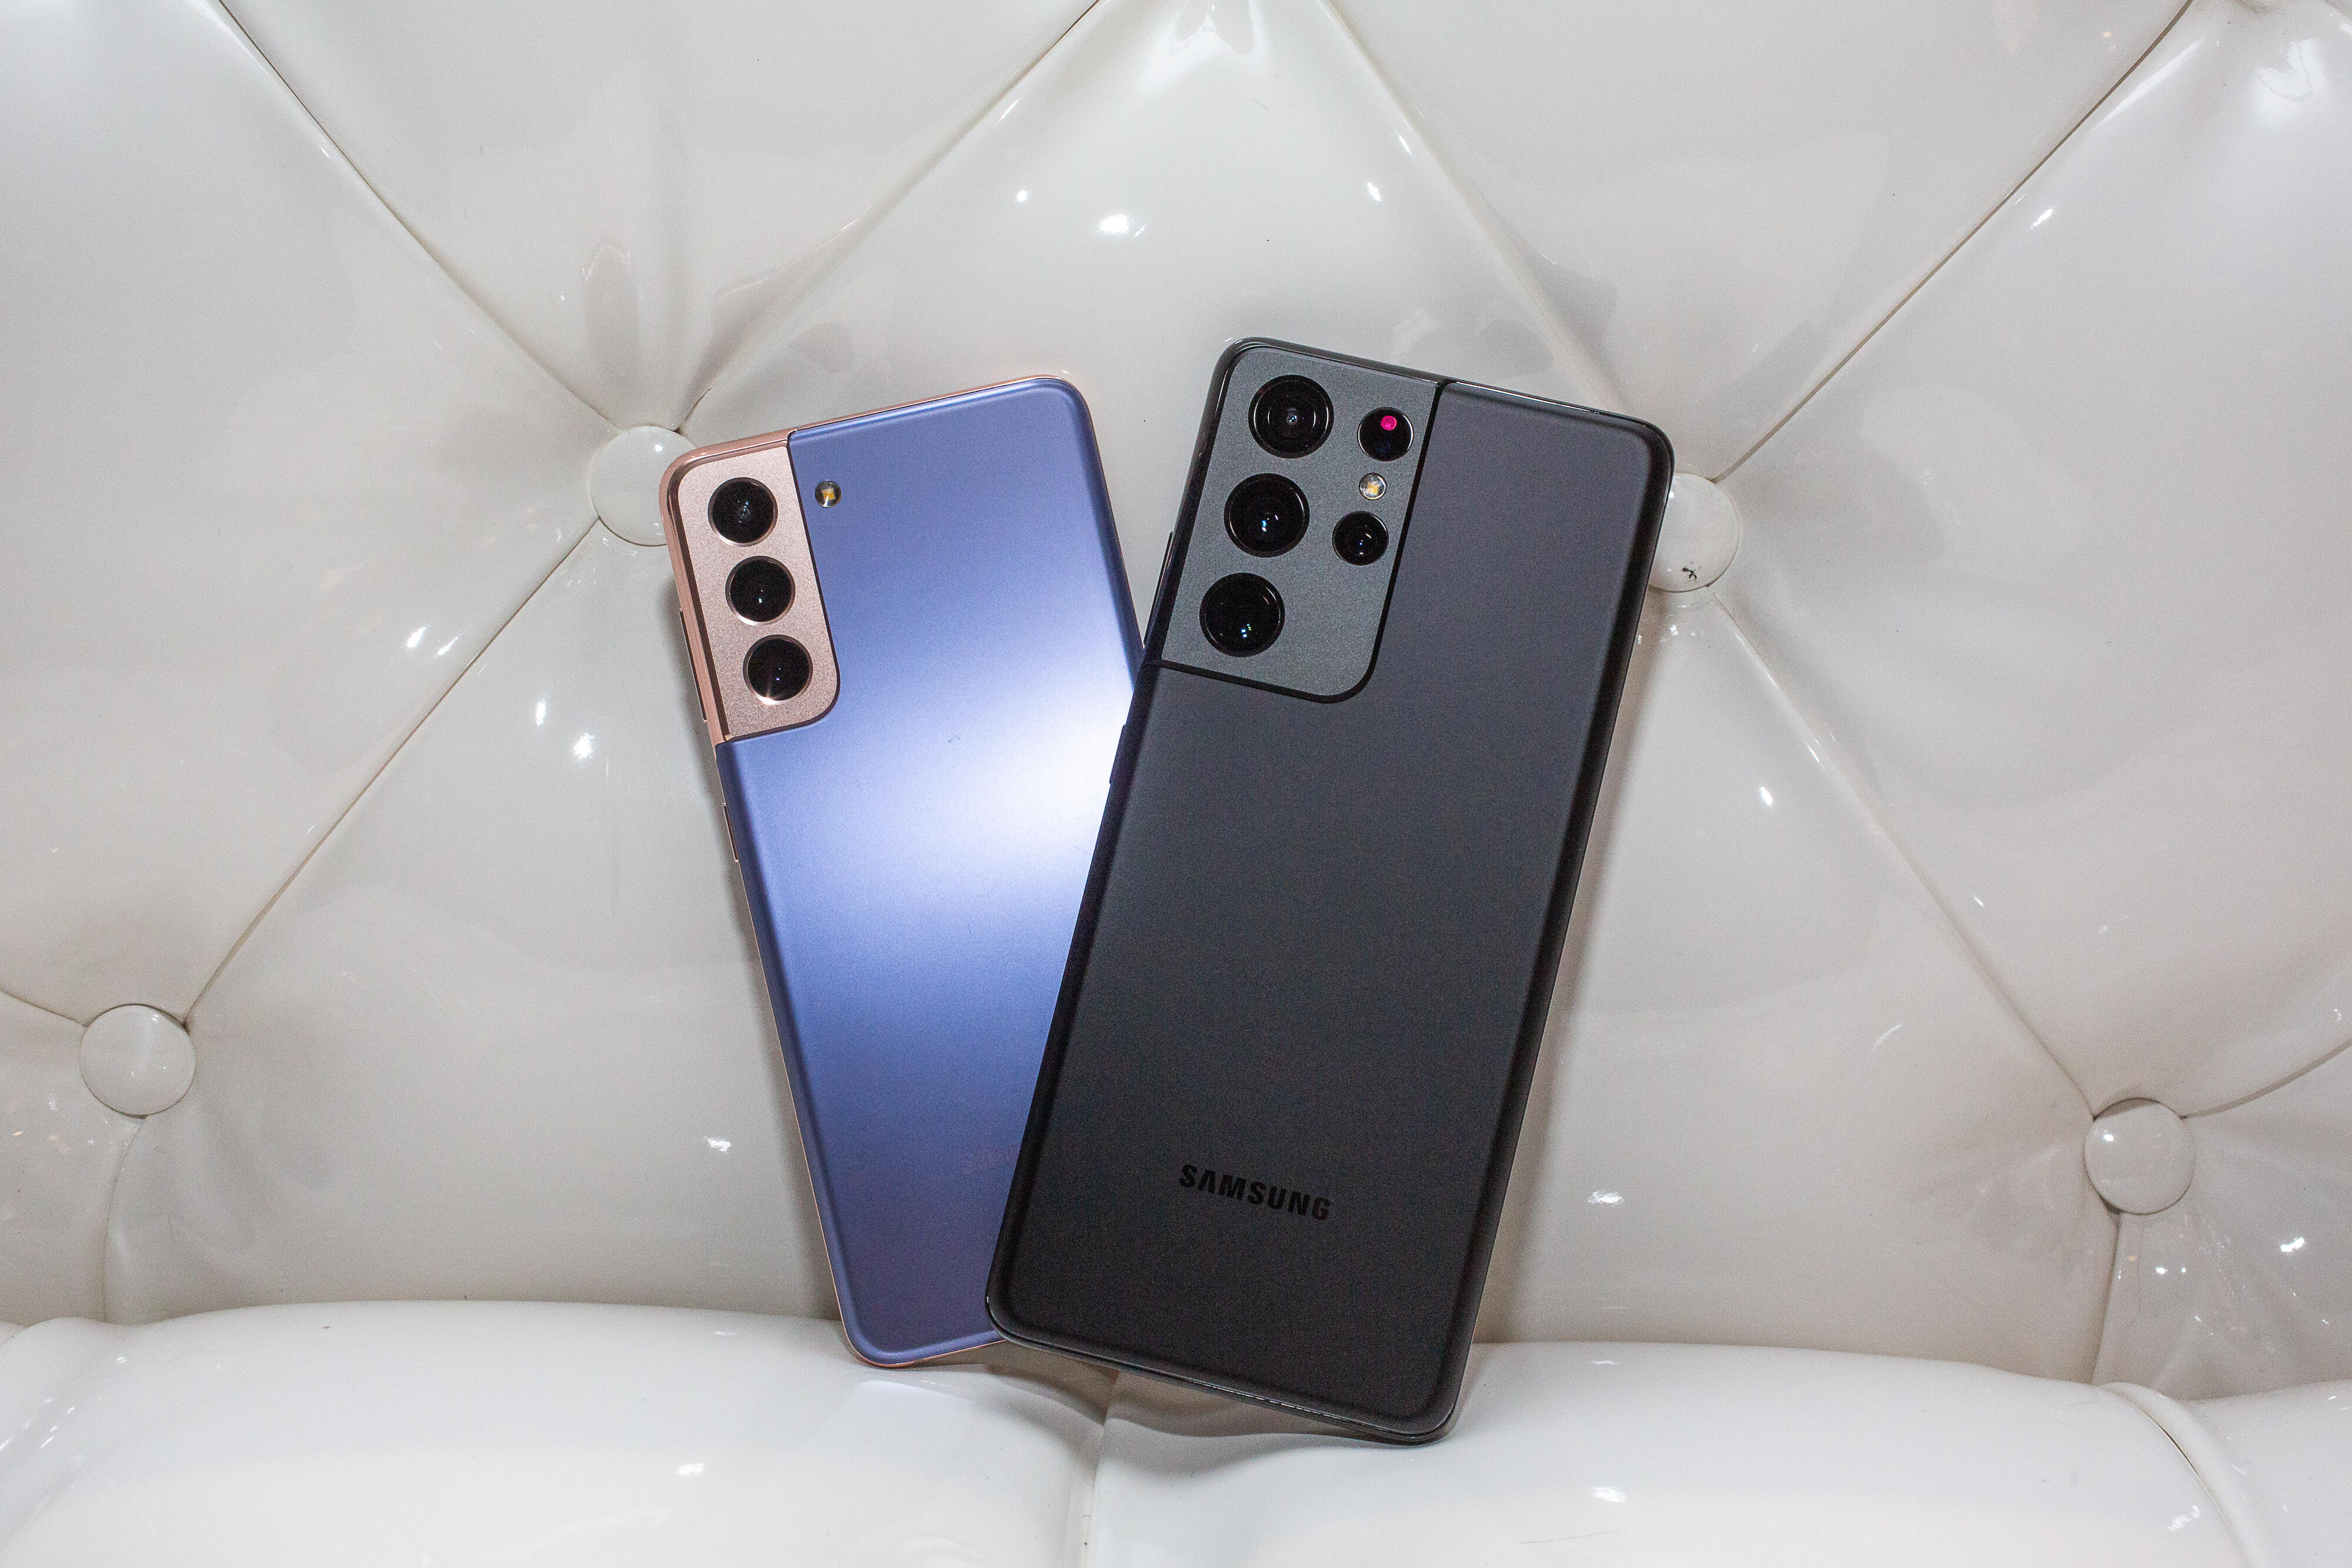 Samsung Phones For Verizon On Backorder For Christmas 2021 Buy A Galaxy S21 Now Here S Where To Find One Of Samsung S Newest Phones Cnet